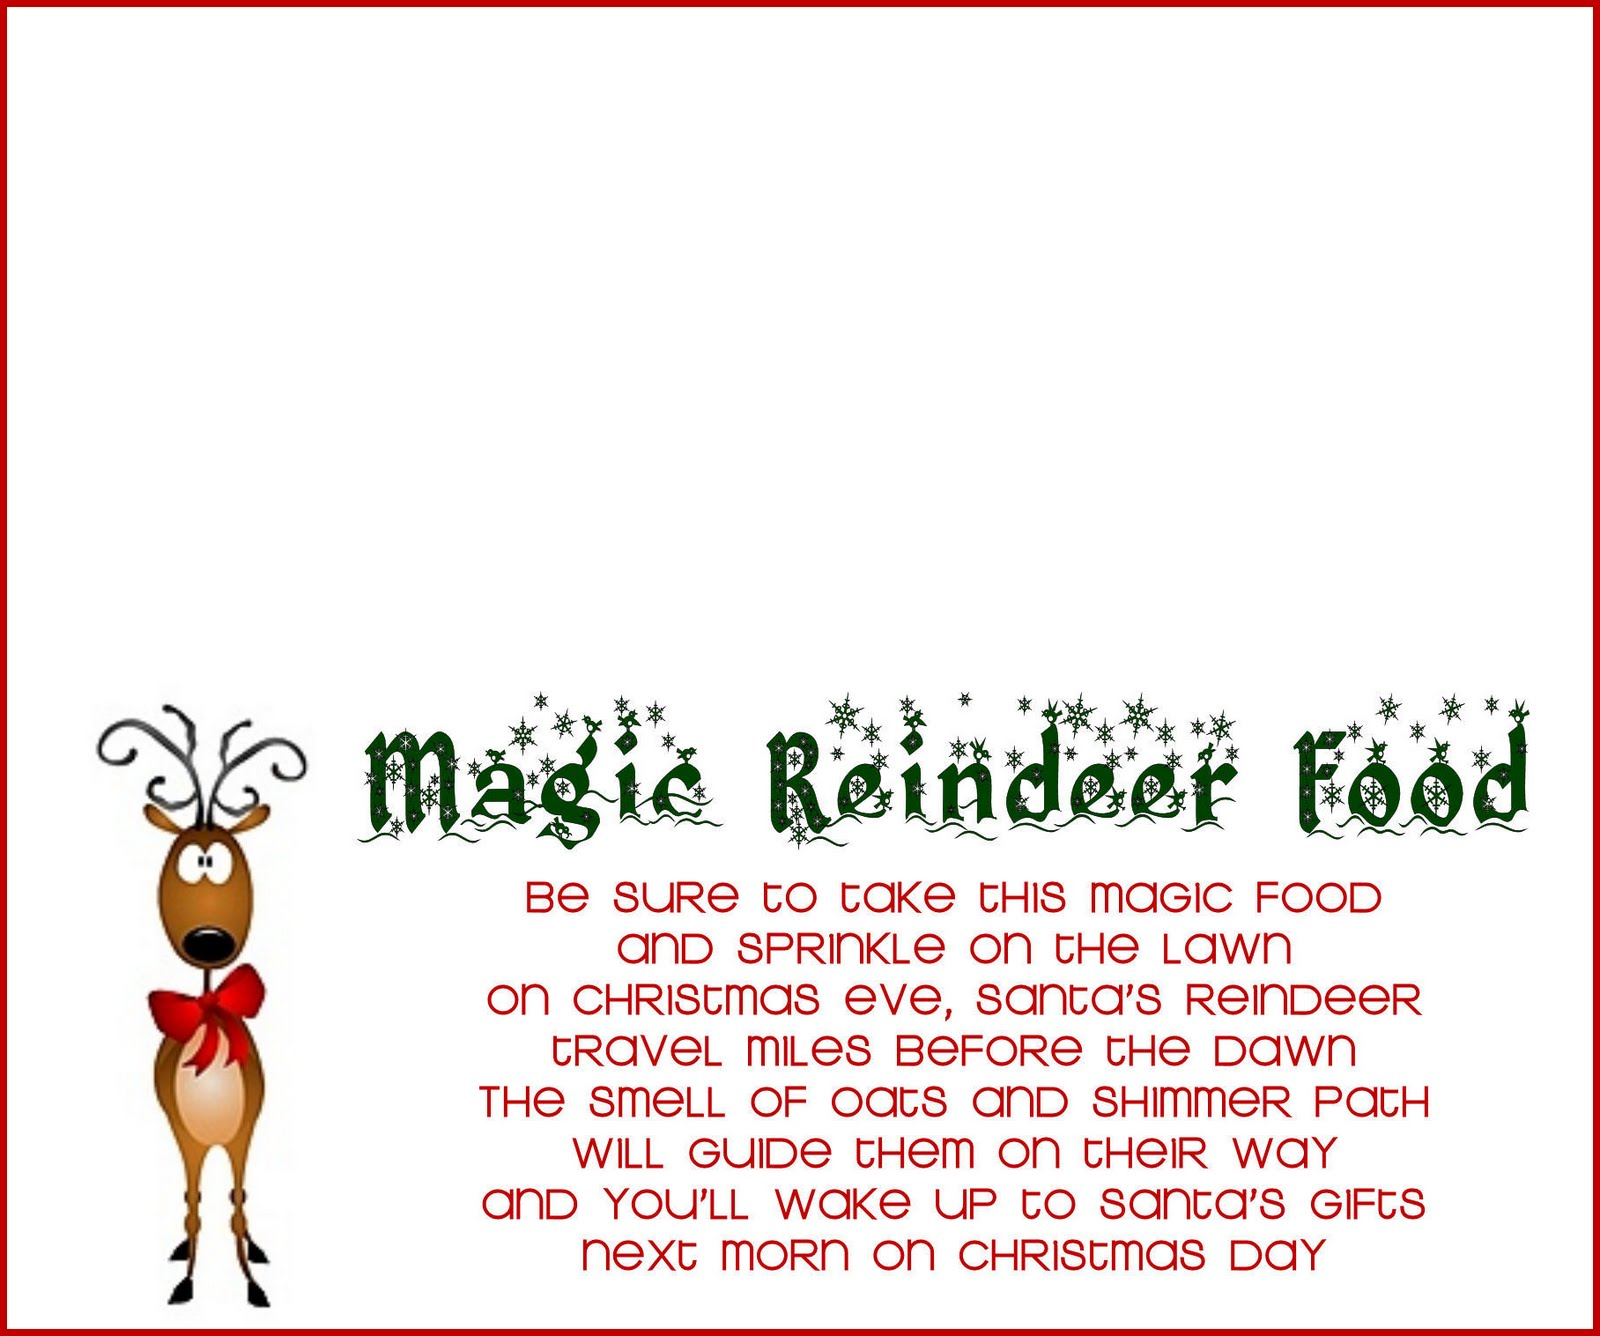 This is an image of Epic Reindeer Food Printable